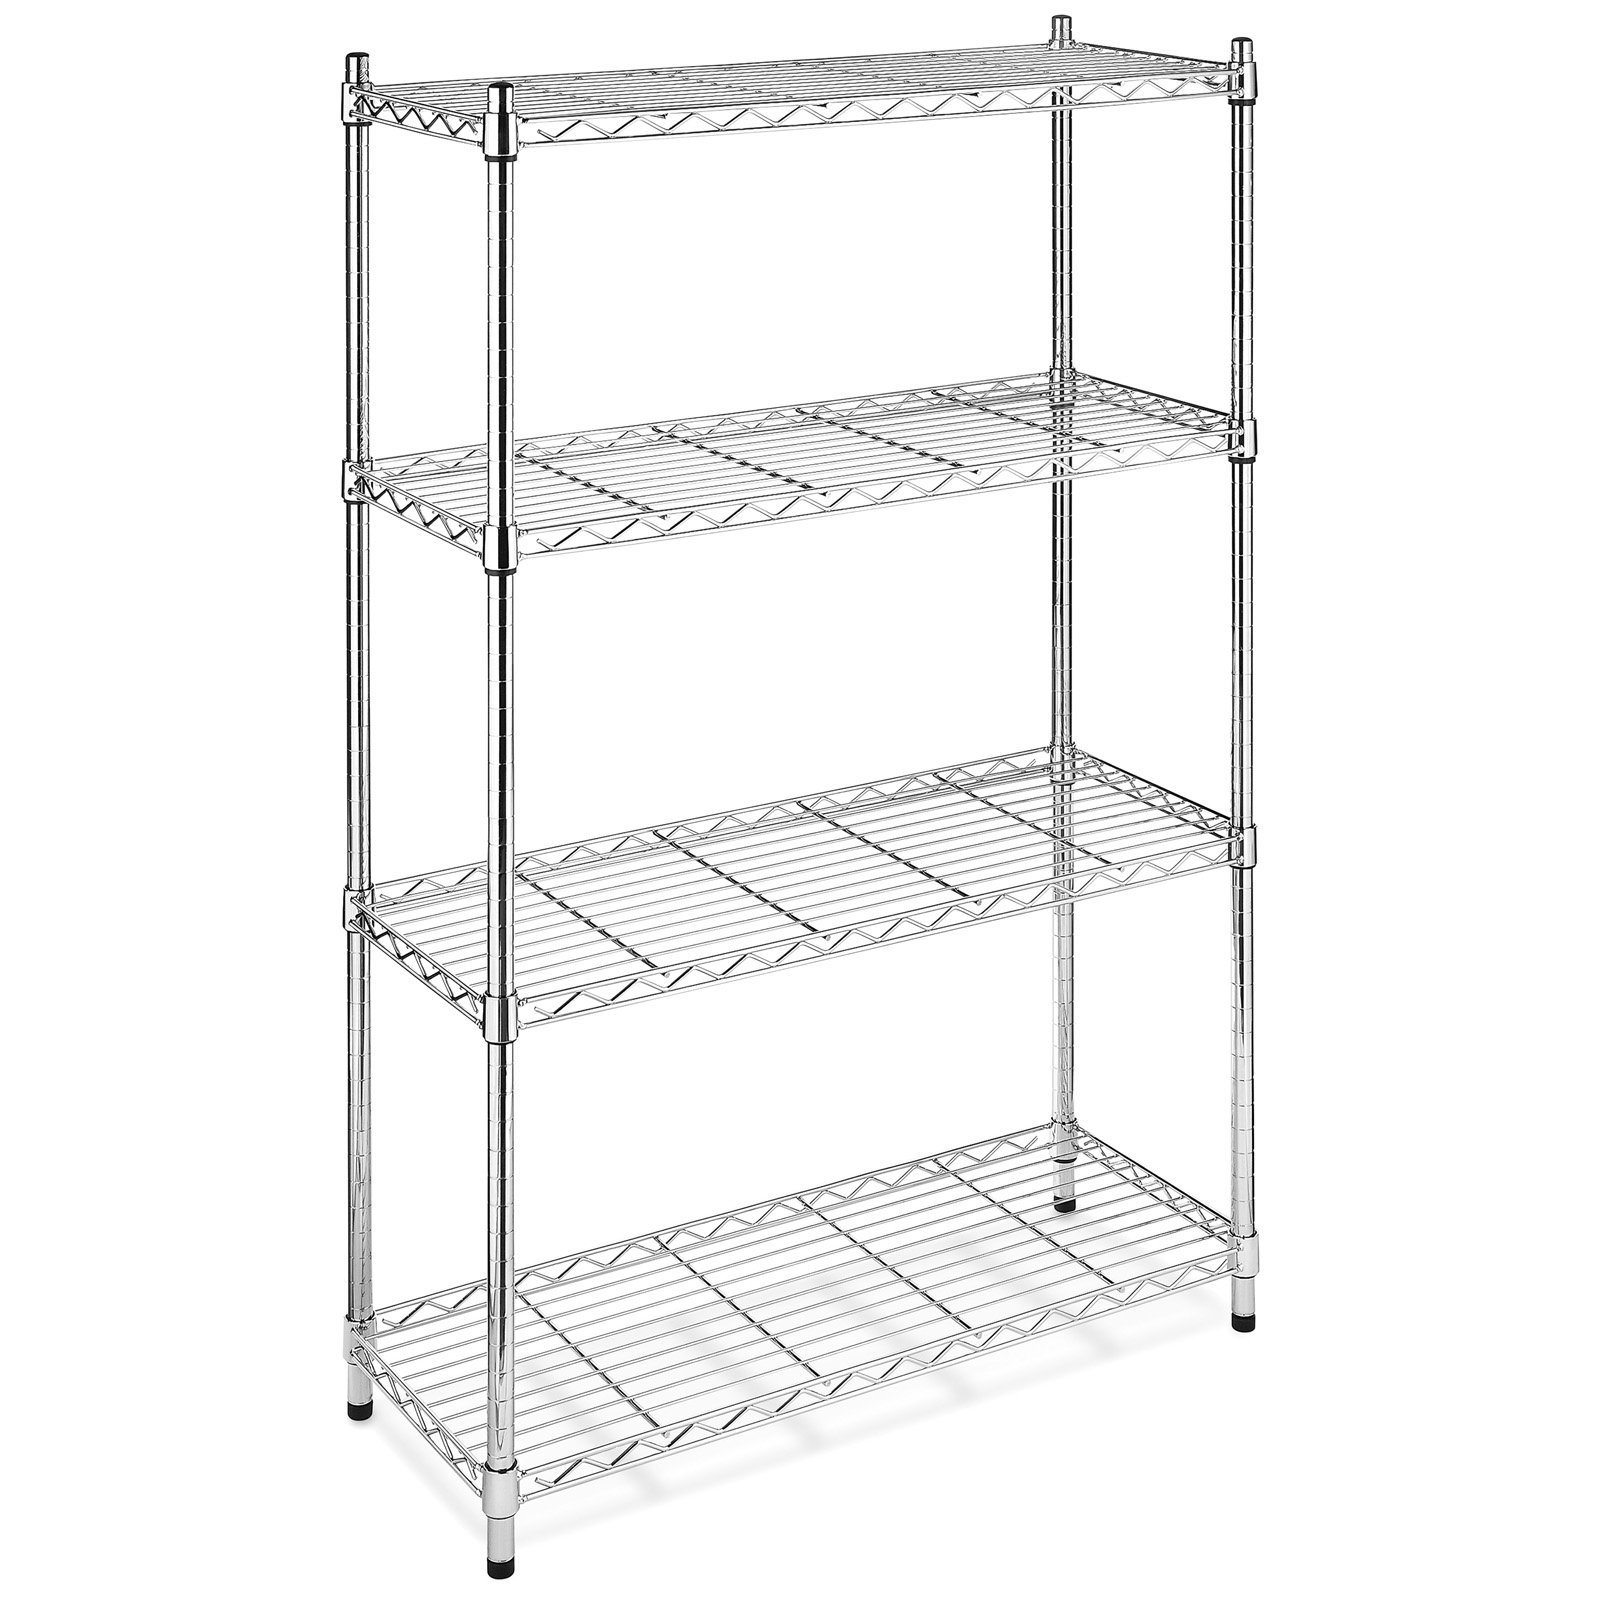 chrome kitchen storage racks 201 tag 232 re de fil d acier inoxydable rayonnage yg 325smln 5421